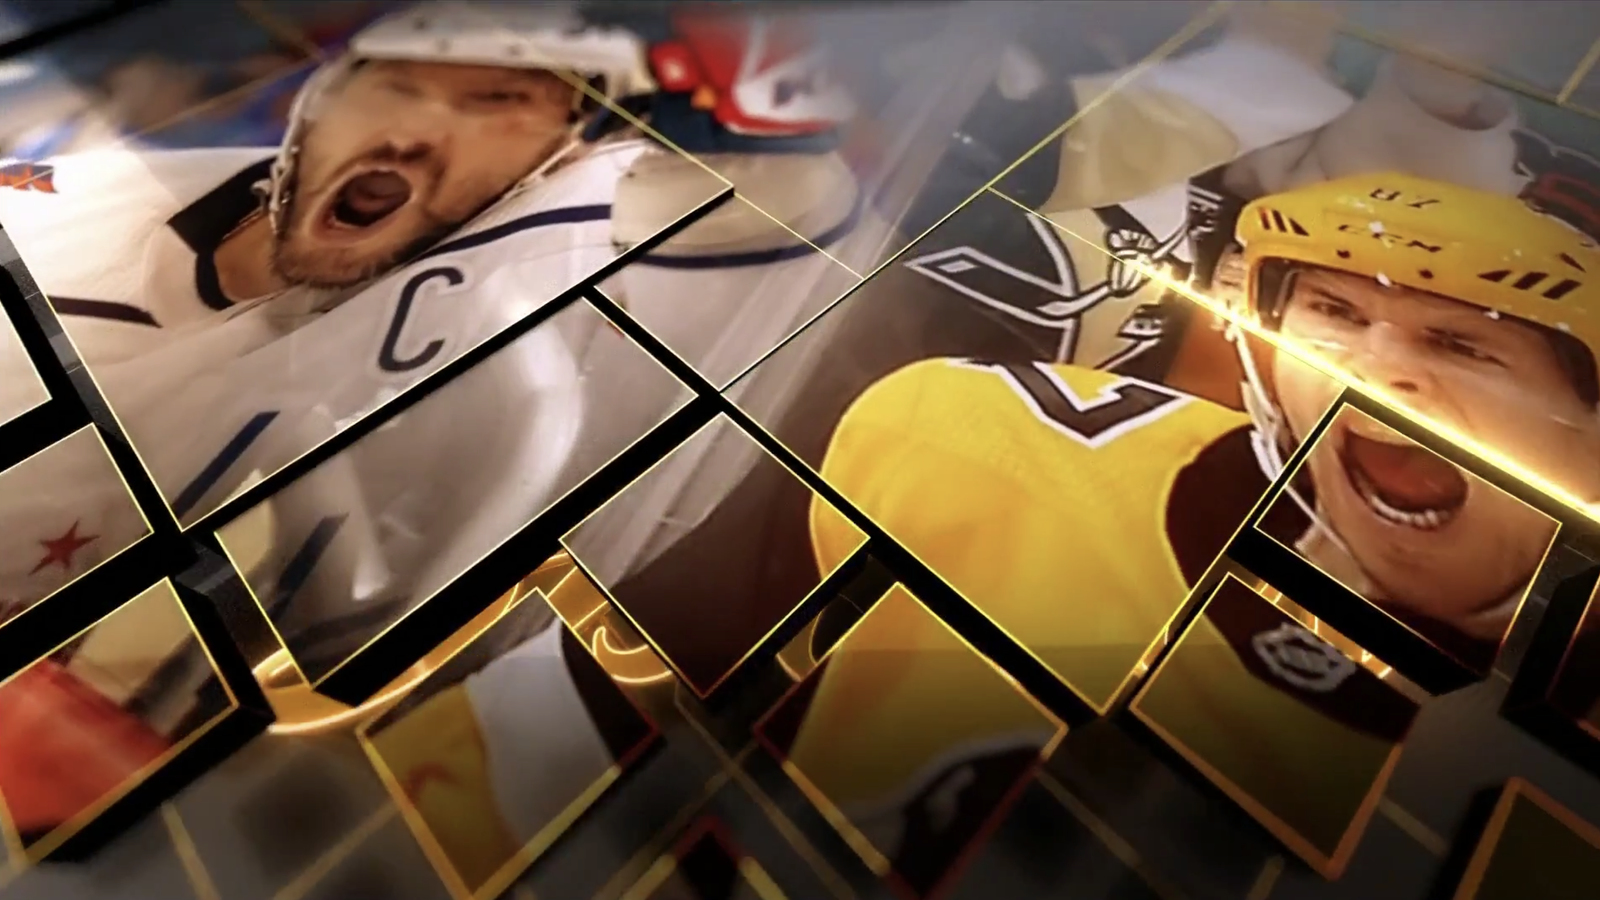 NCS_NHL-on-NBC_2019_Motion-Graphics_002